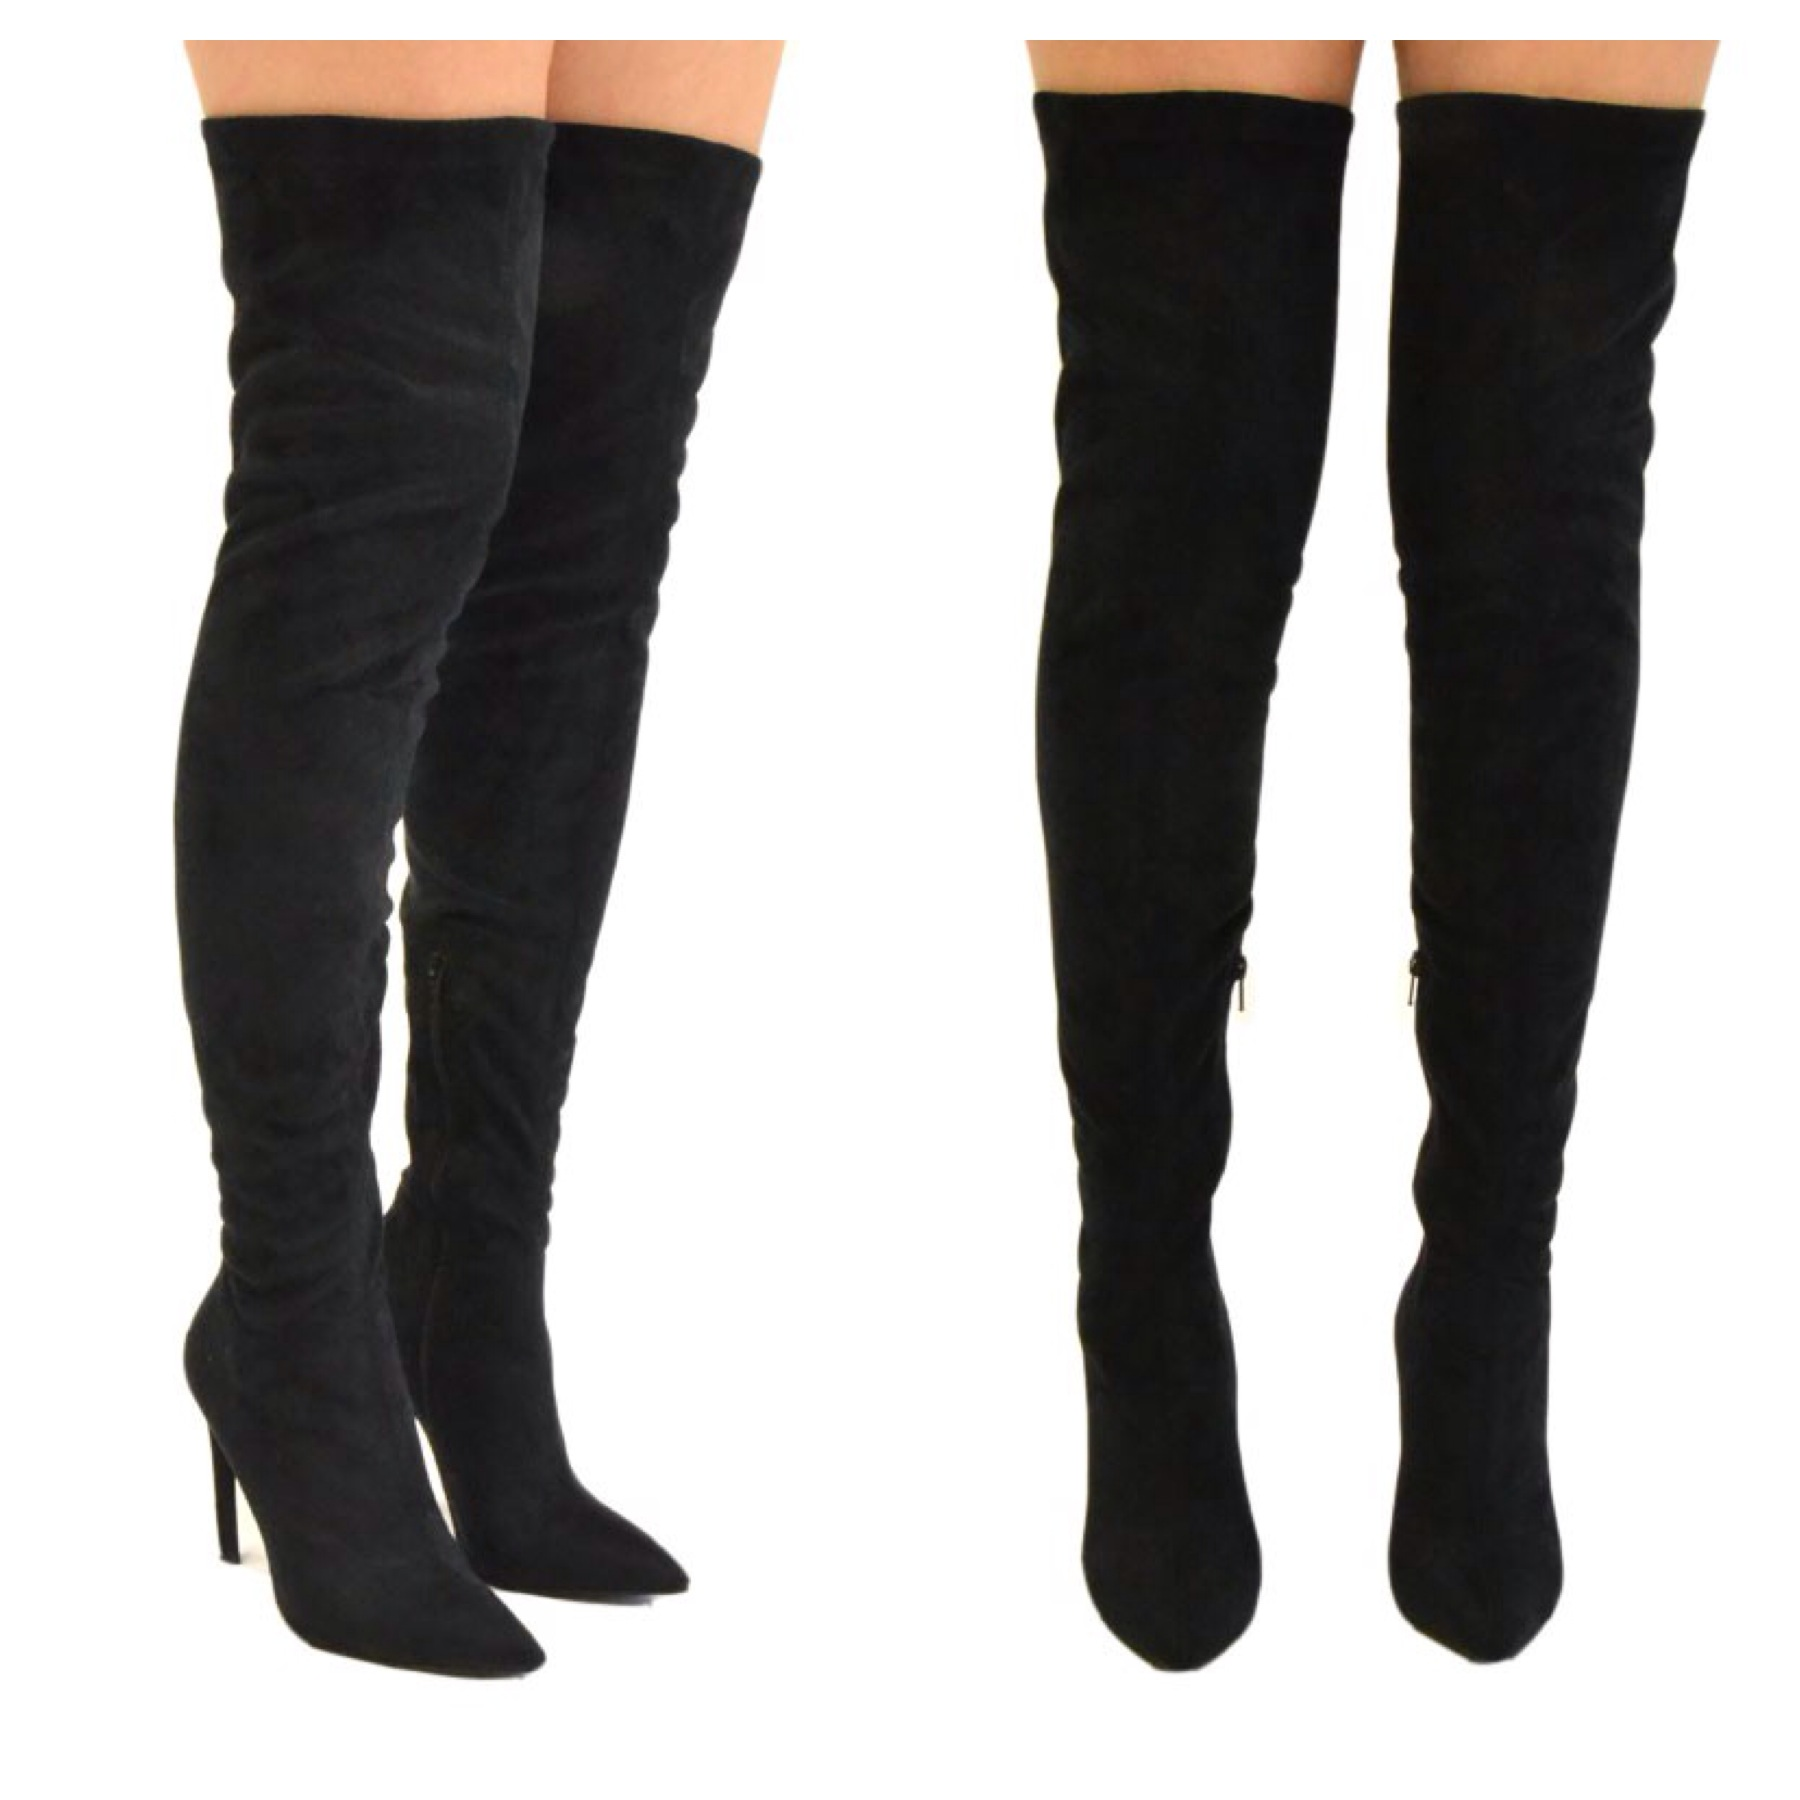 Thigh High Boots Black XByewJLq